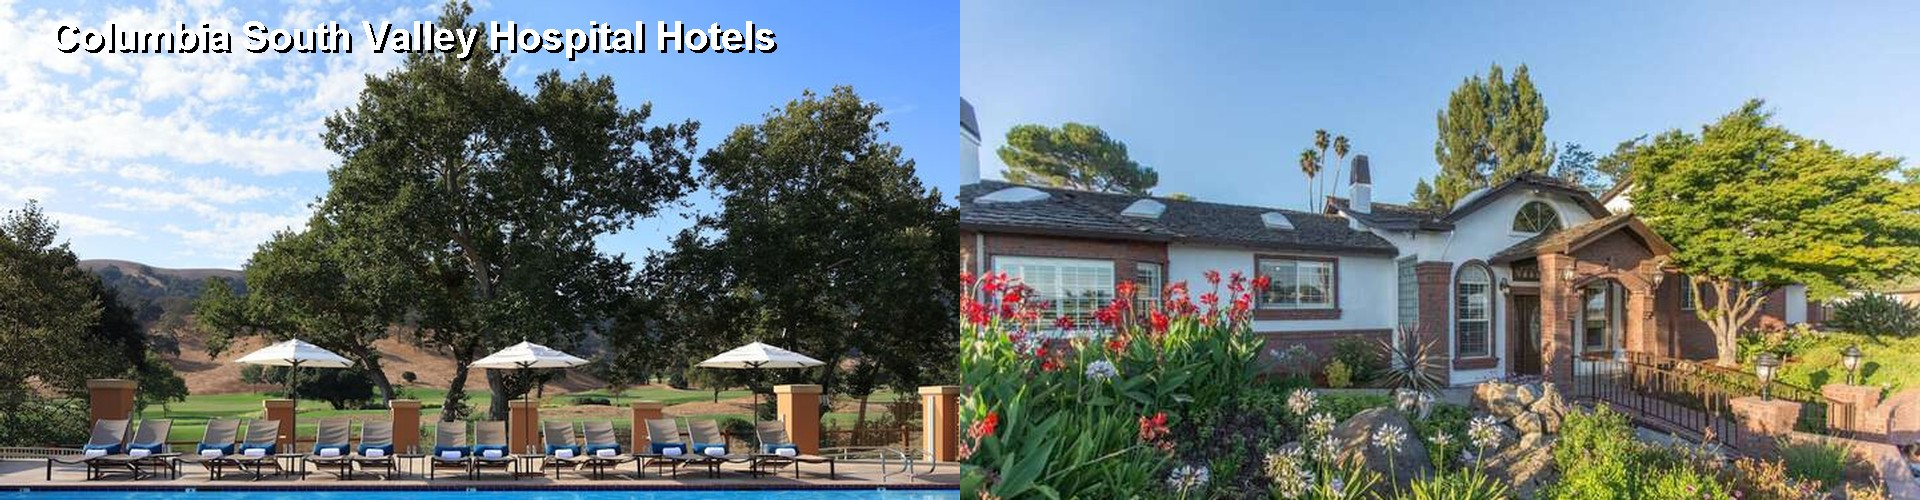 5 Best Hotels near Columbia South Valley Hospital